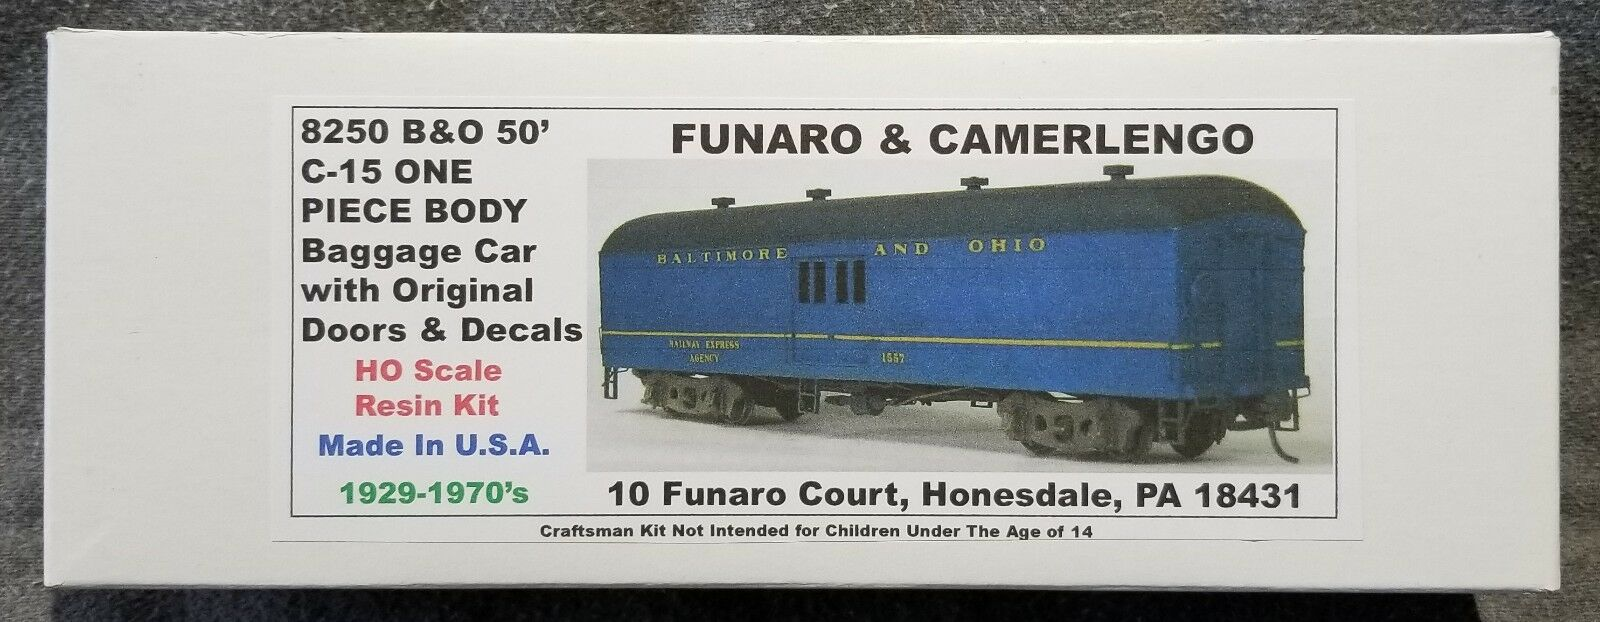 Funaro F&C 8250 BALTIMORE OHIO 50' B&O C-15 Borsagage Passenger Original Door 1-PC